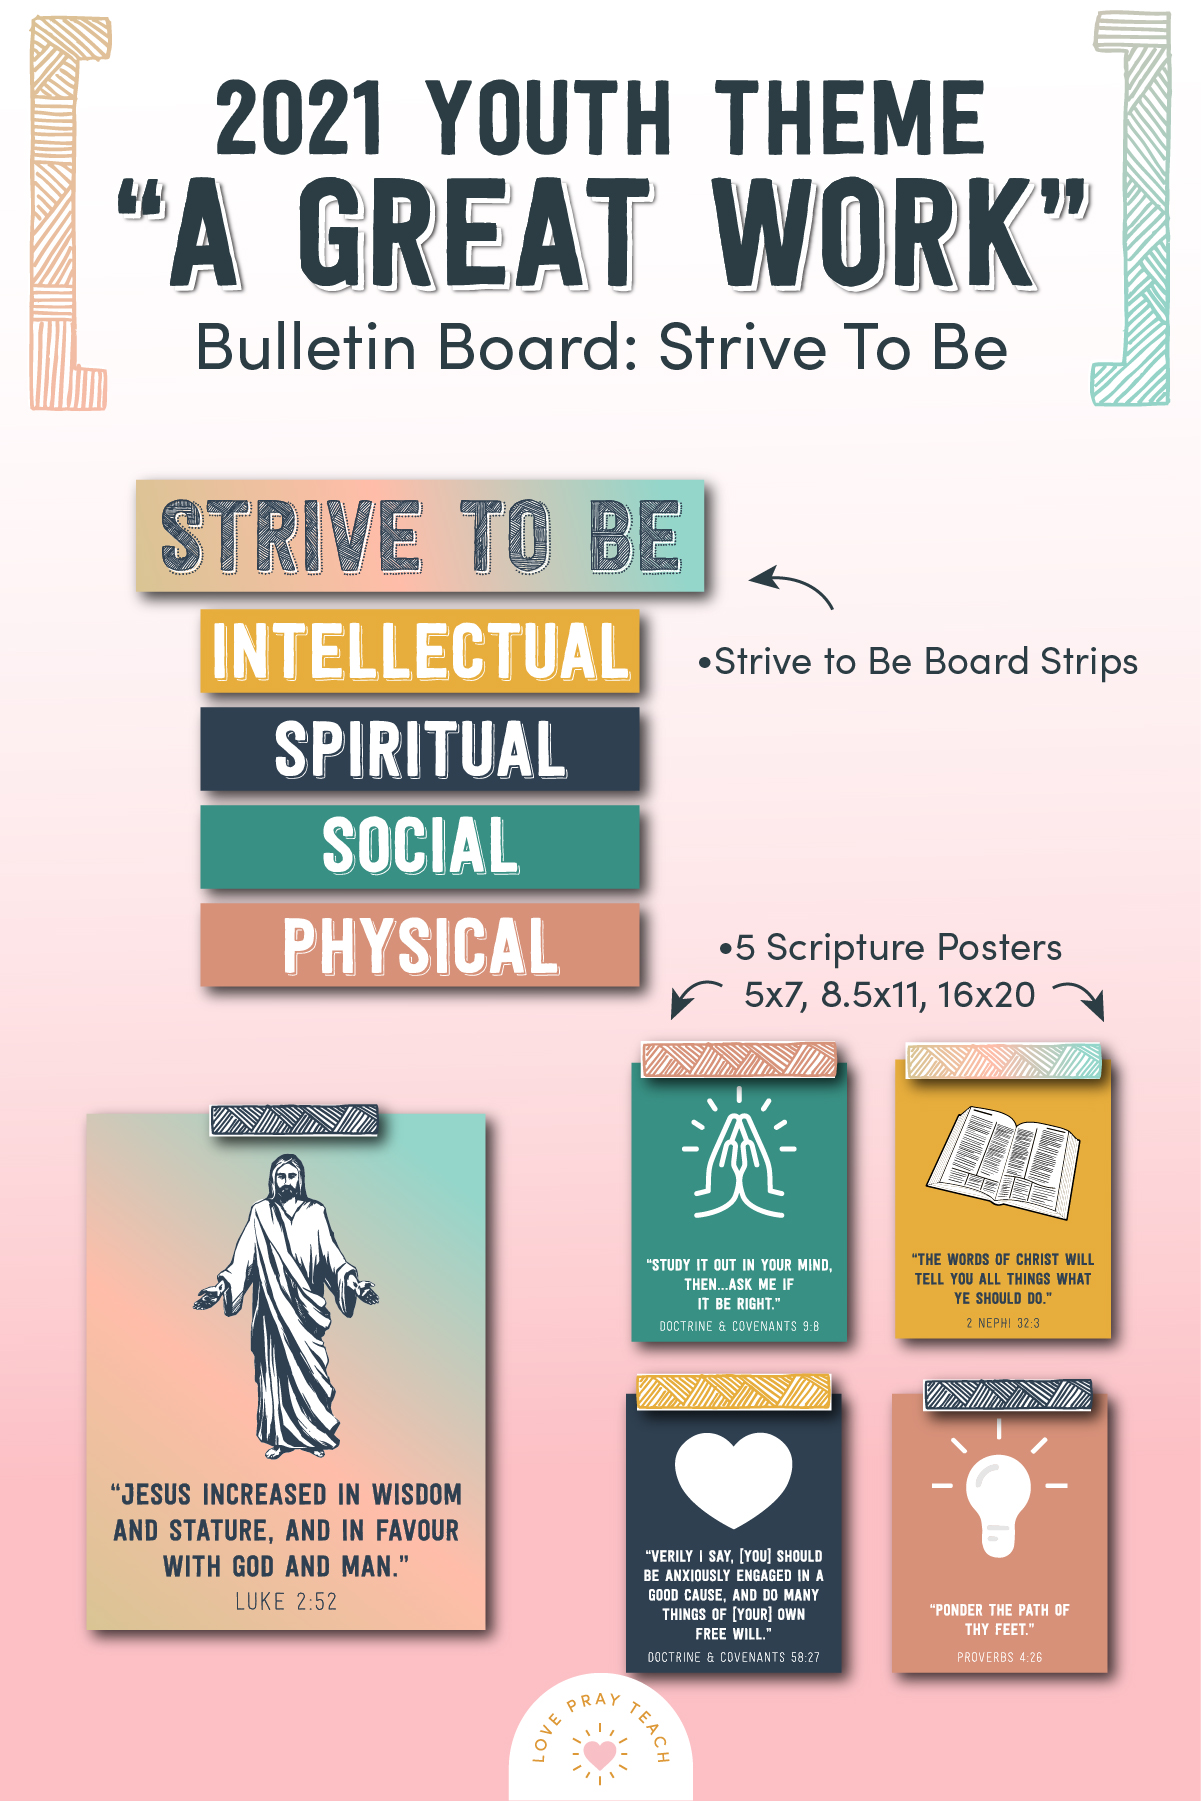 Strive to Be bulletin board decorations www.LovePrayTeach.com